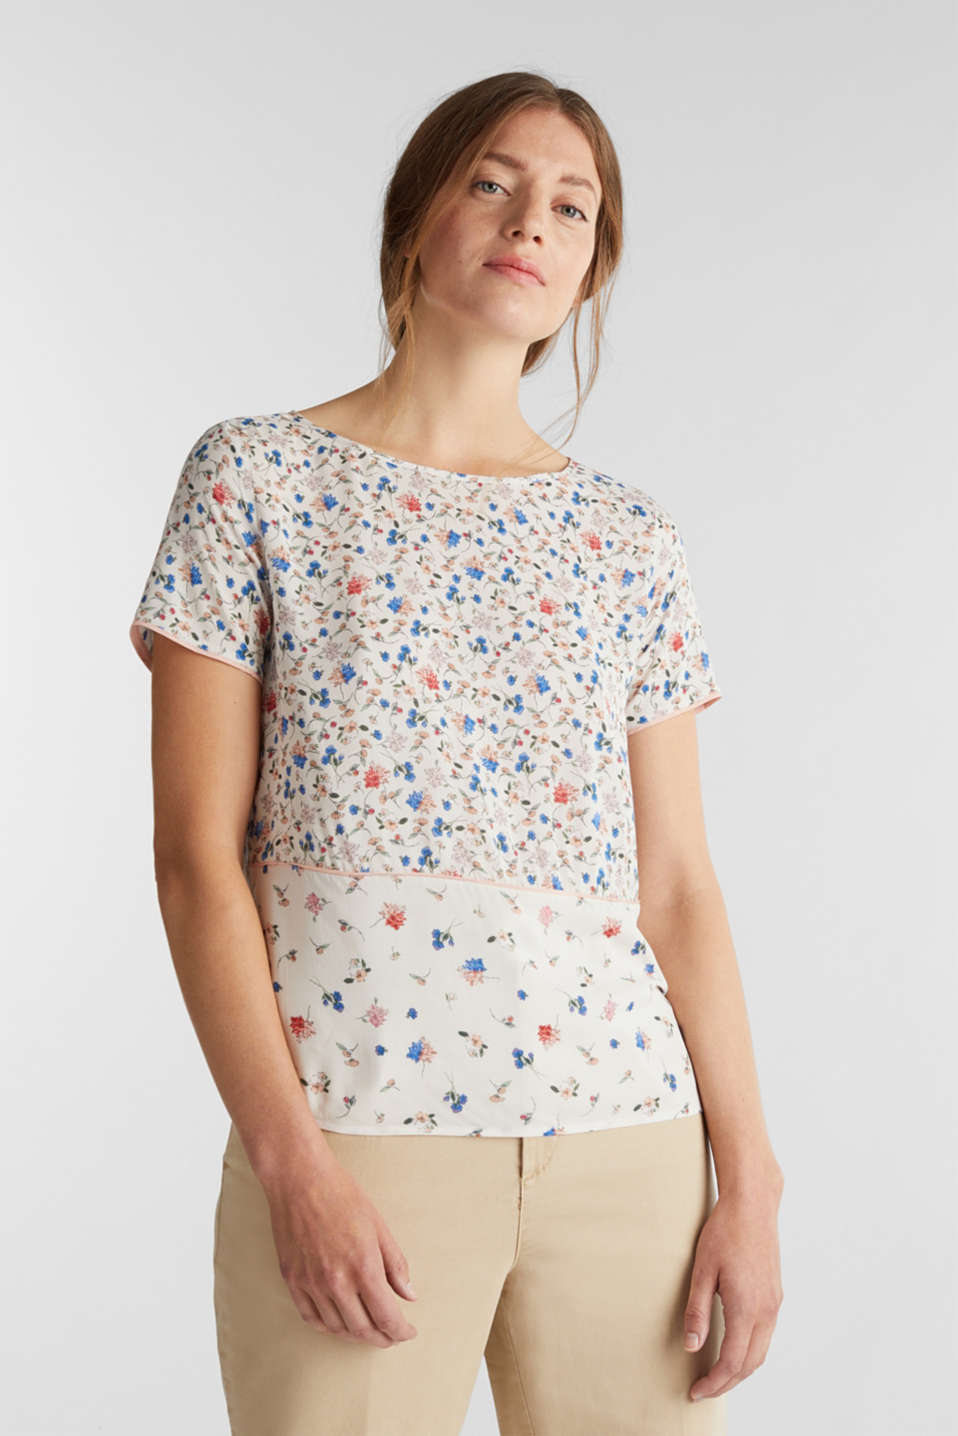 Esprit - Blouse top with a mix of prints